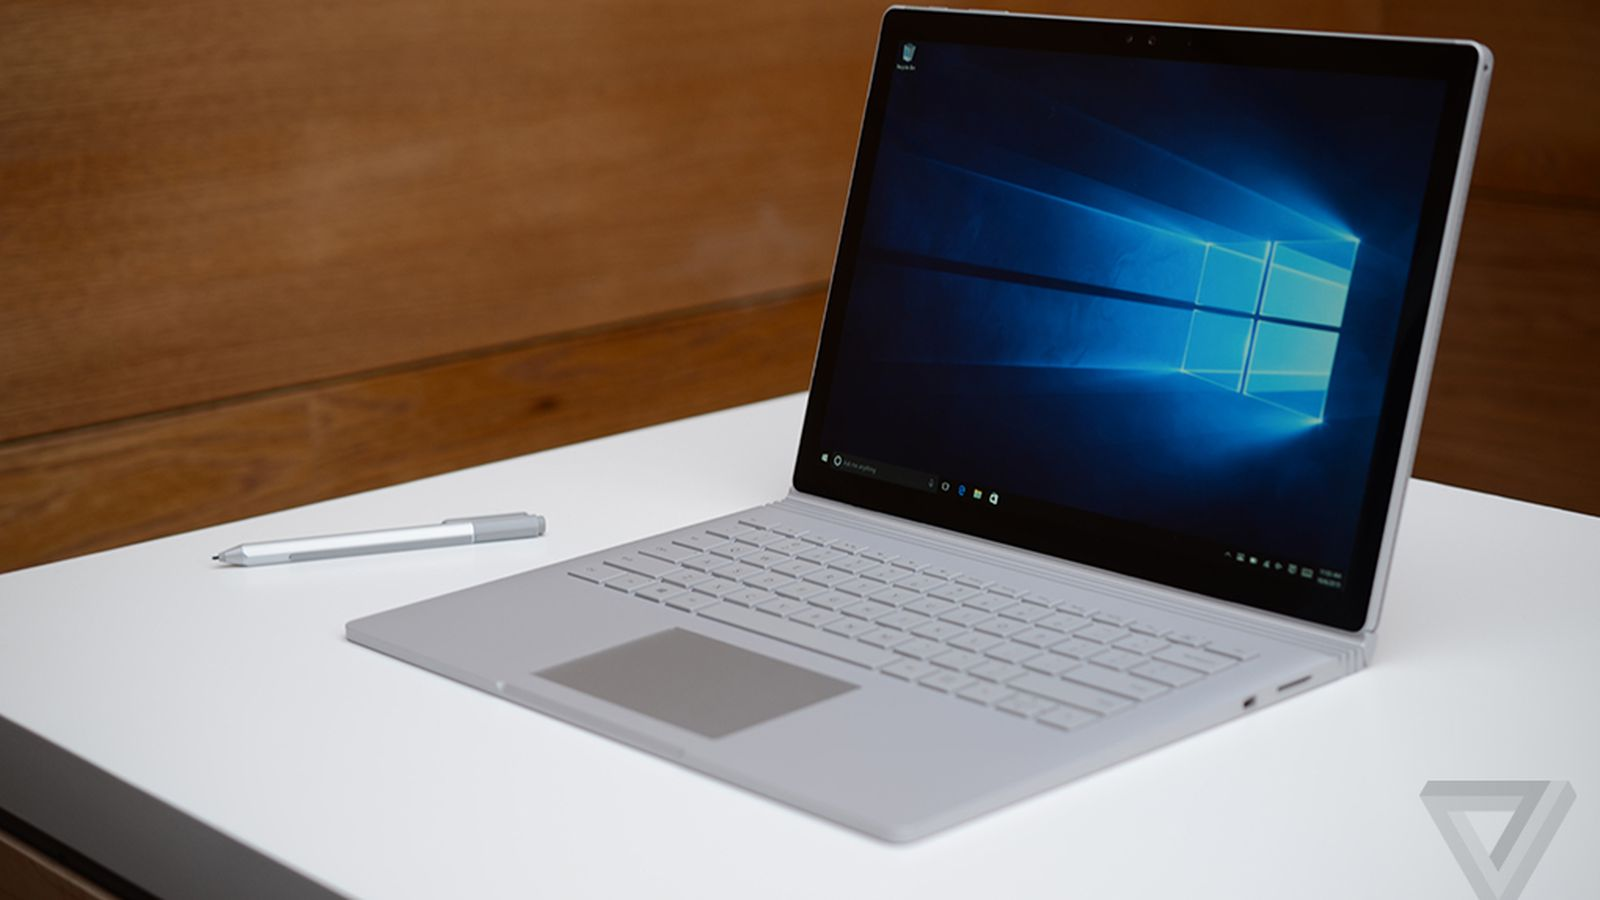 A closer look at Microsofts new Surface Book laptop  The